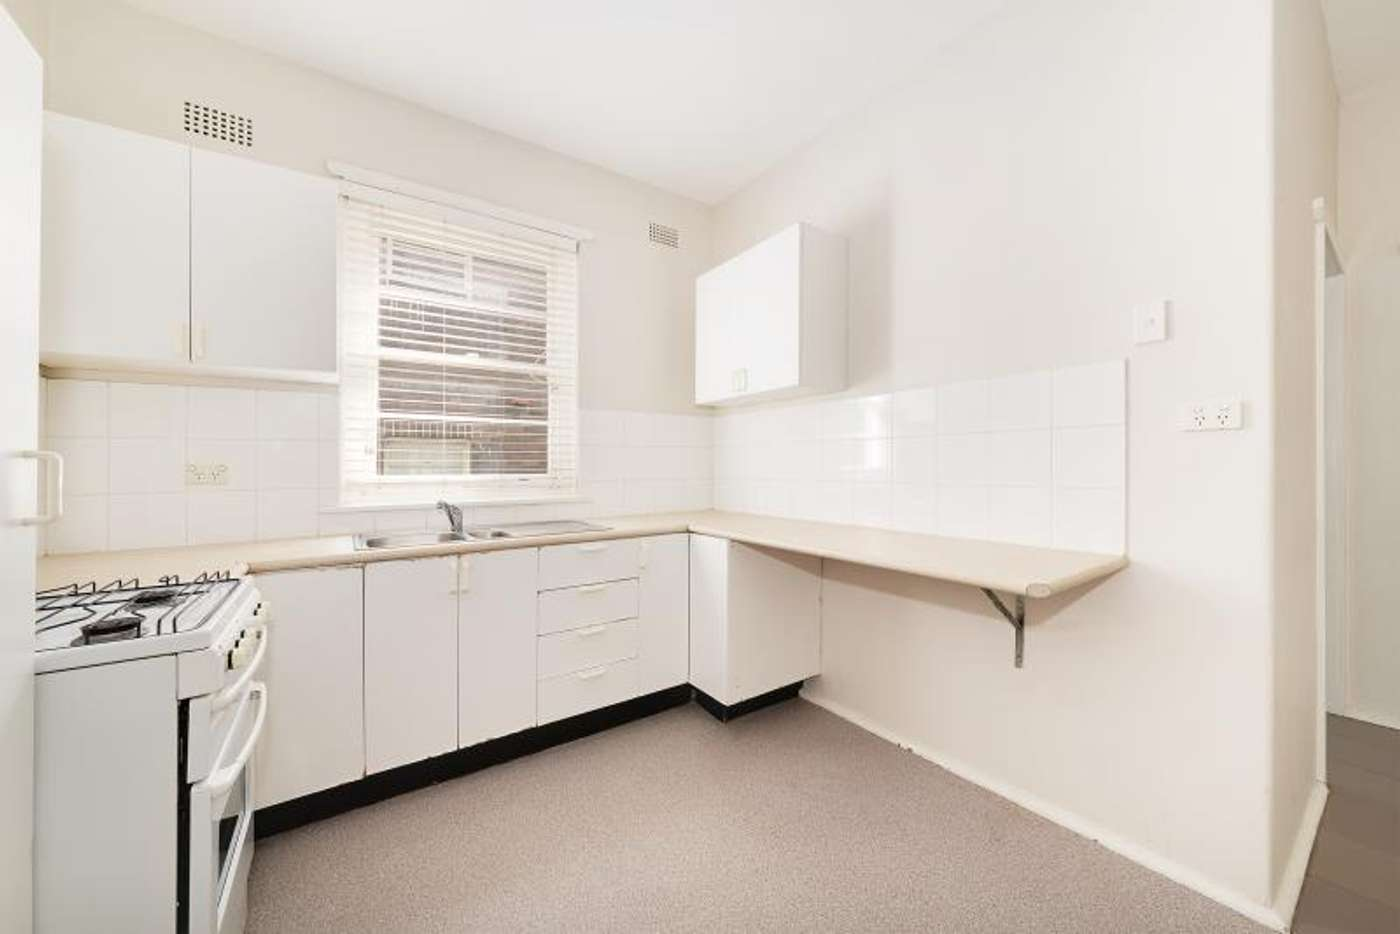 Main view of Homely apartment listing, 9/20 Glebe Street, Randwick NSW 2031